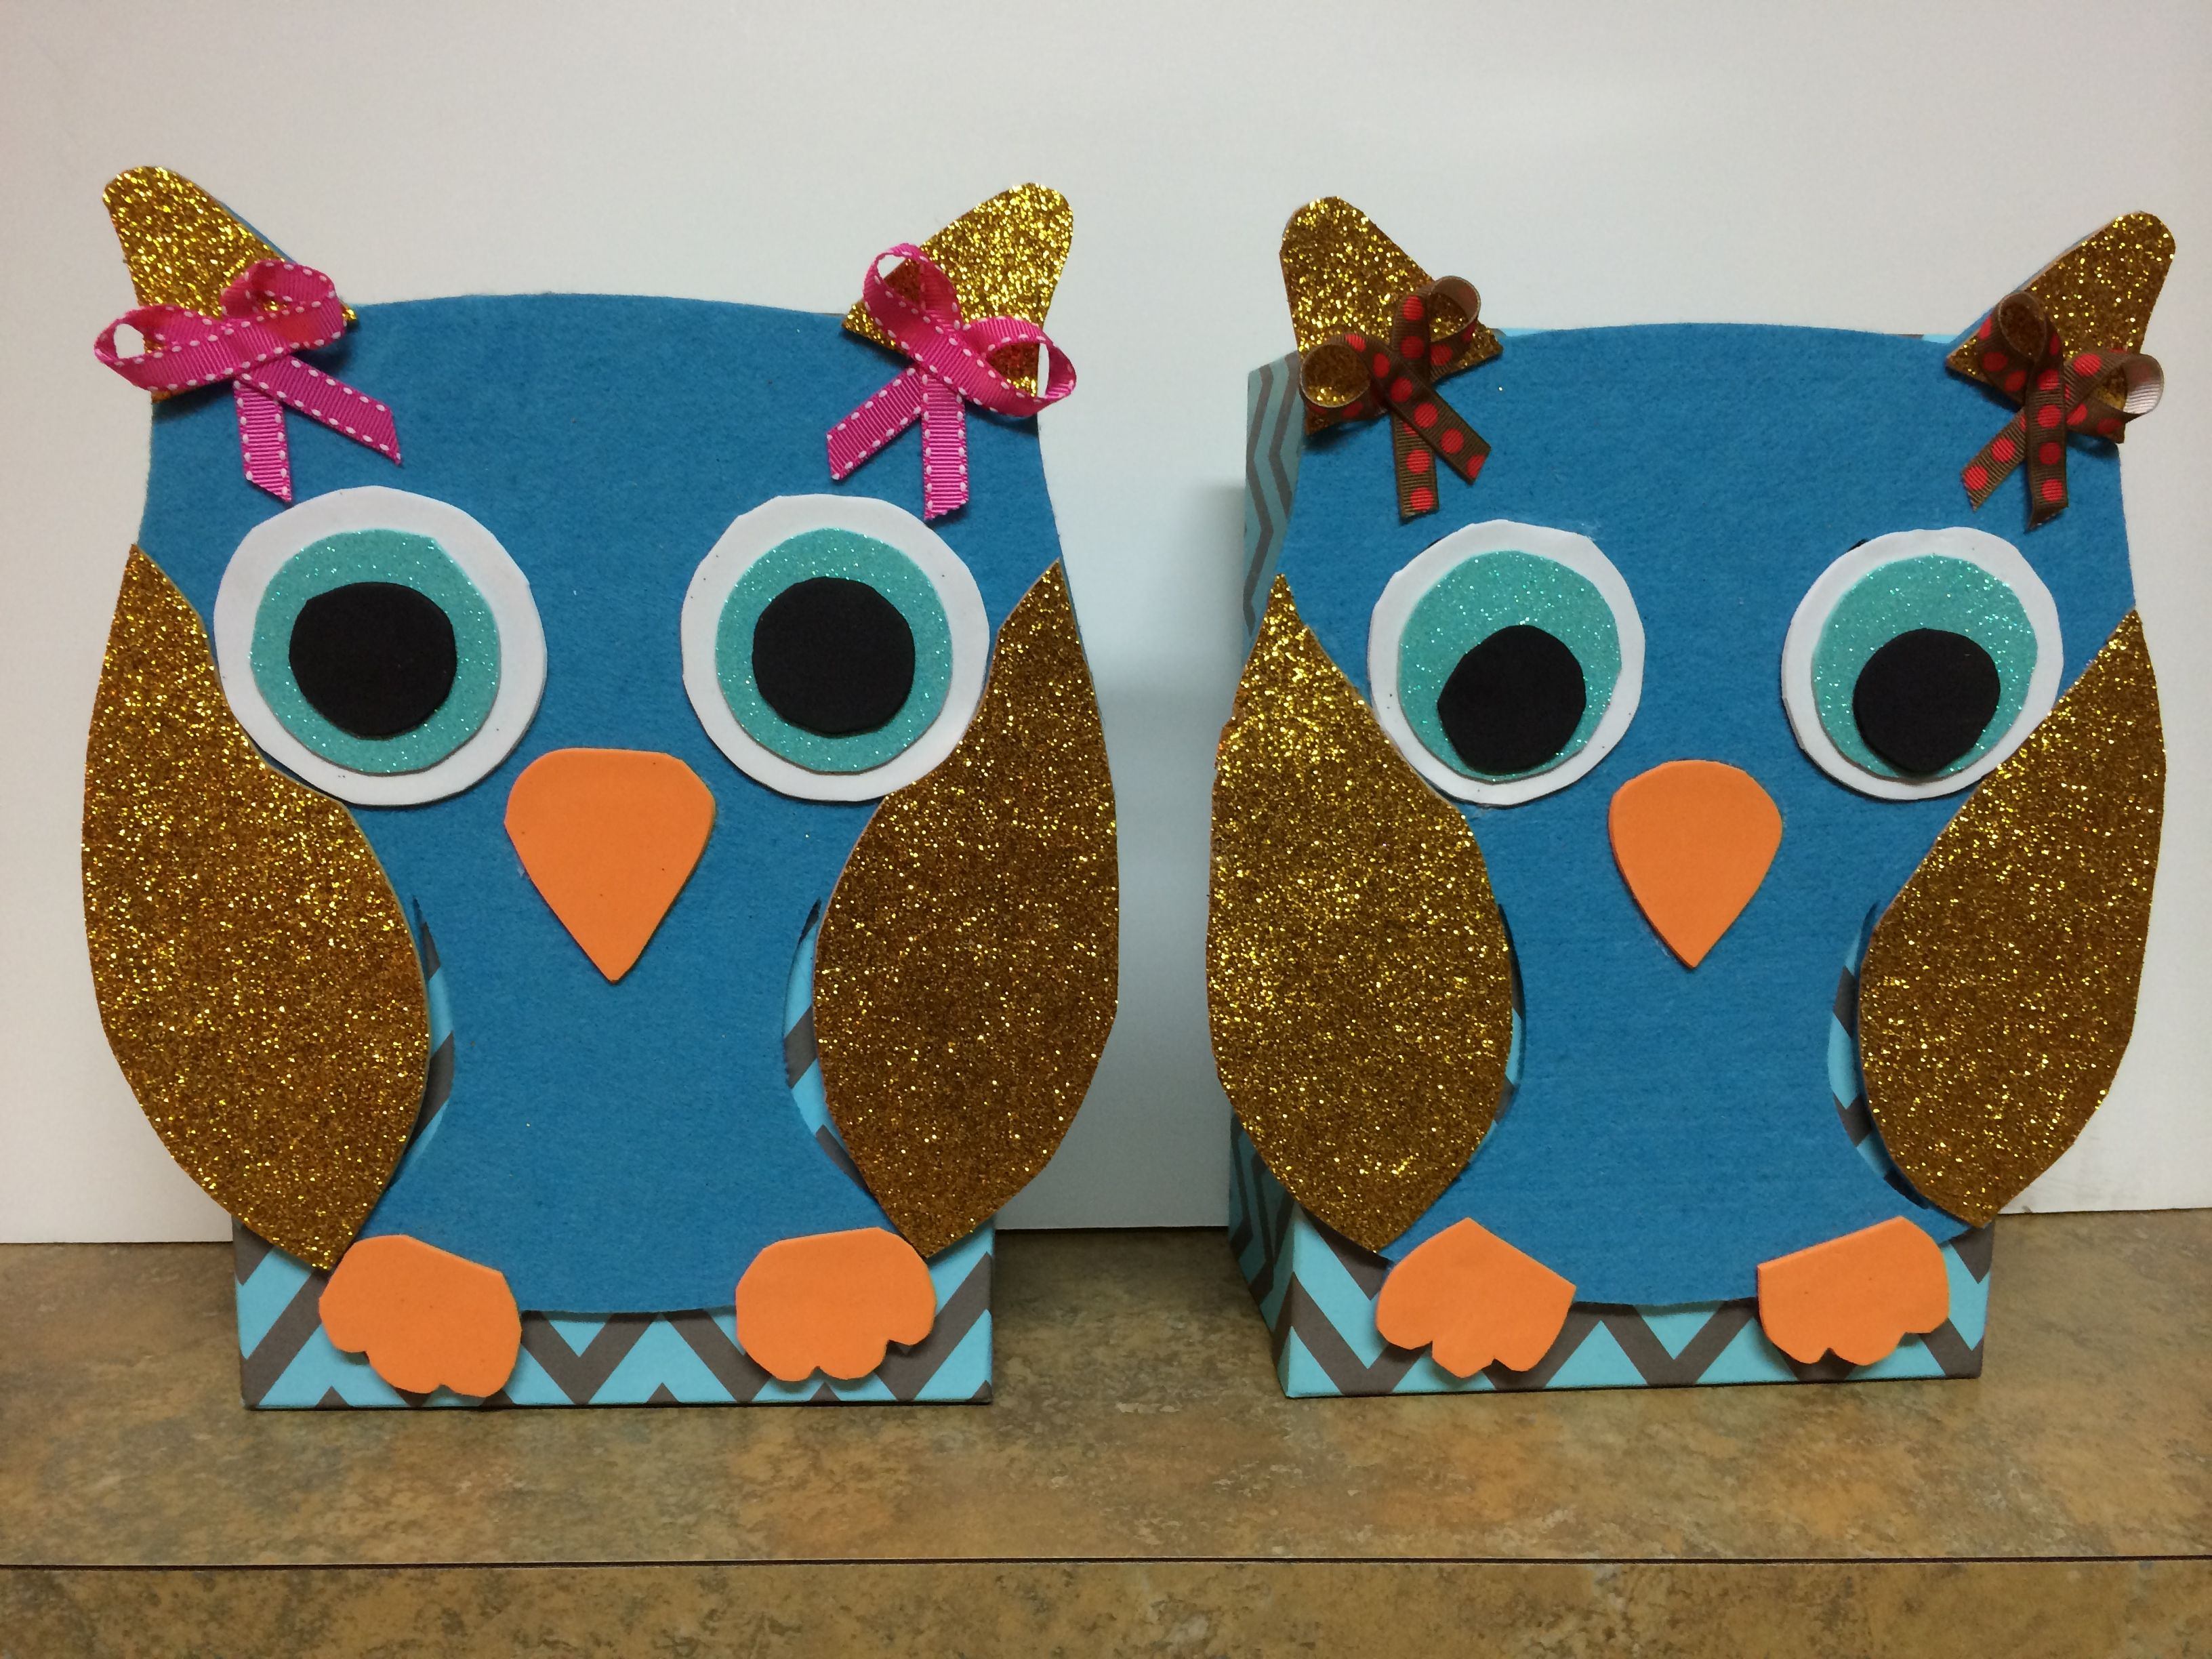 Owl Valentine's Day Boxes!    Bought the supplies for two boxes at Walmart for less than $15.  The boxes are photo boxes.  They sold a cut out owl (the blue background of the owl) for $2.  The rest is just foam paper hot glued together!  The first one we made, I glued the owl to the lid BEFORE cutting the foam paper.  This made it more difficult to get gold wings/ears the shape I wanted.  Would definitely recommend cutting out all shapes before hot gluing owl onto box!  :-)